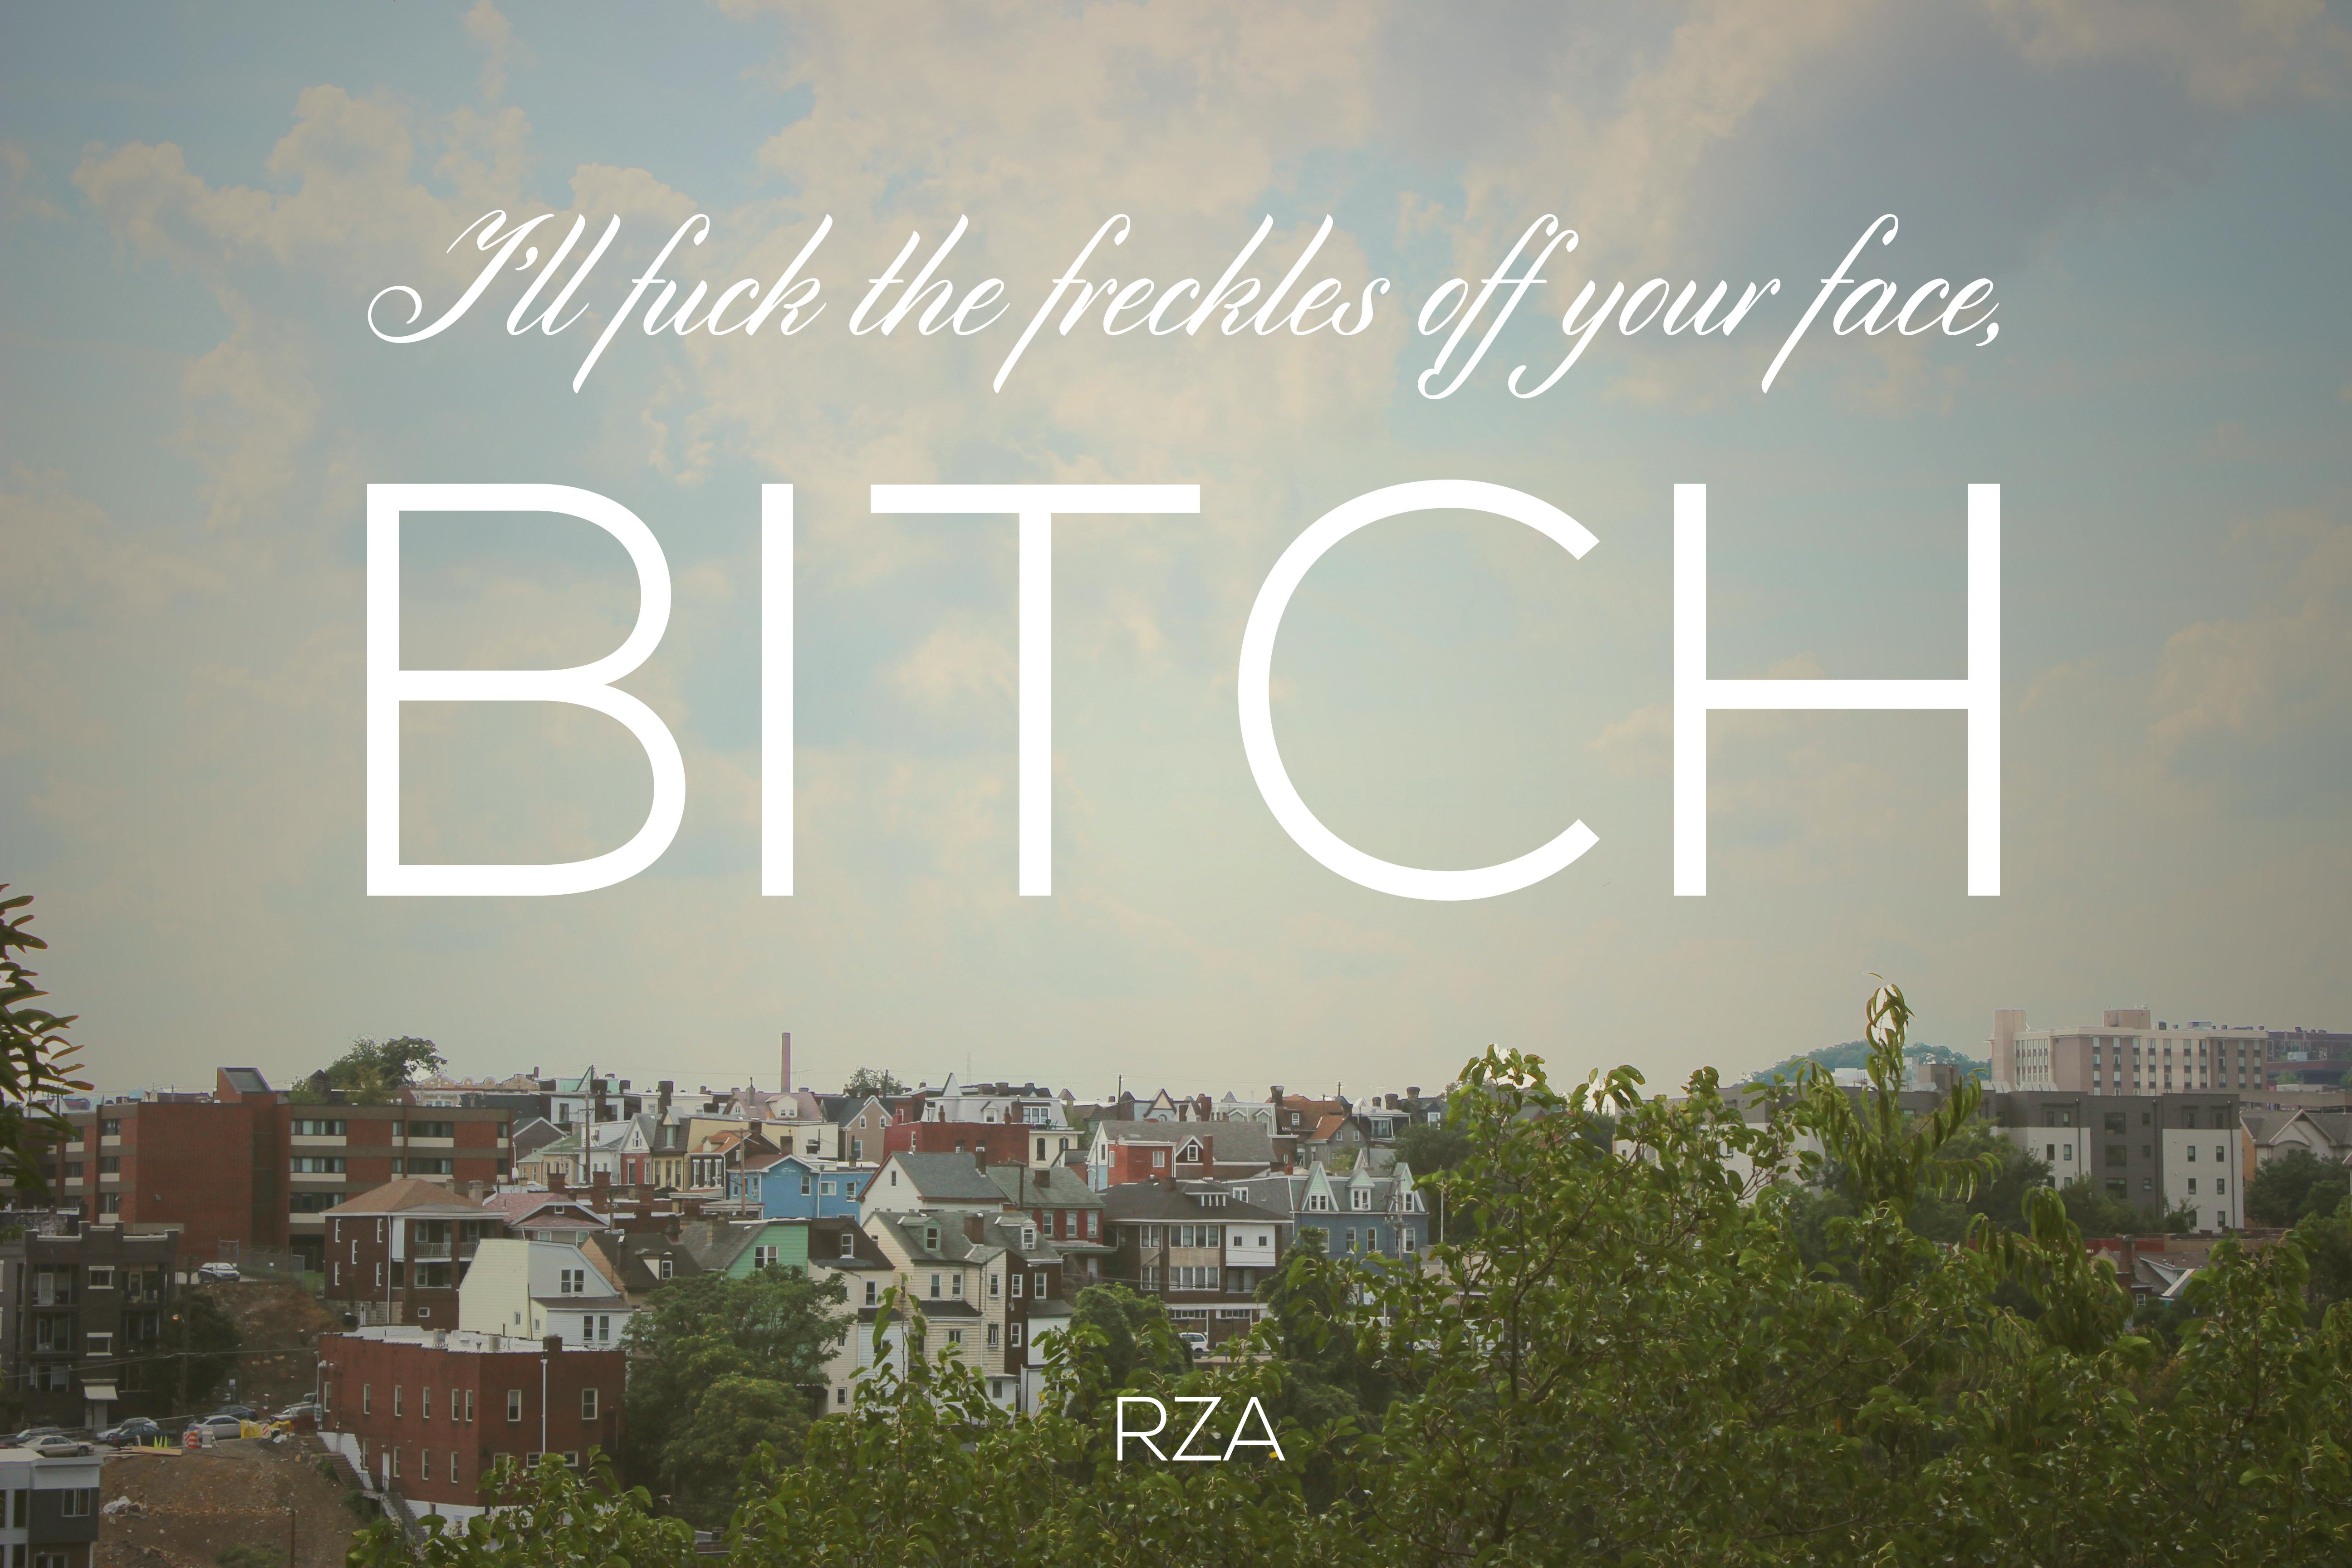 Denzel Washington Quote Wallpaper These Rap Lyrics Posters Are Both Ridiculous And Amazing